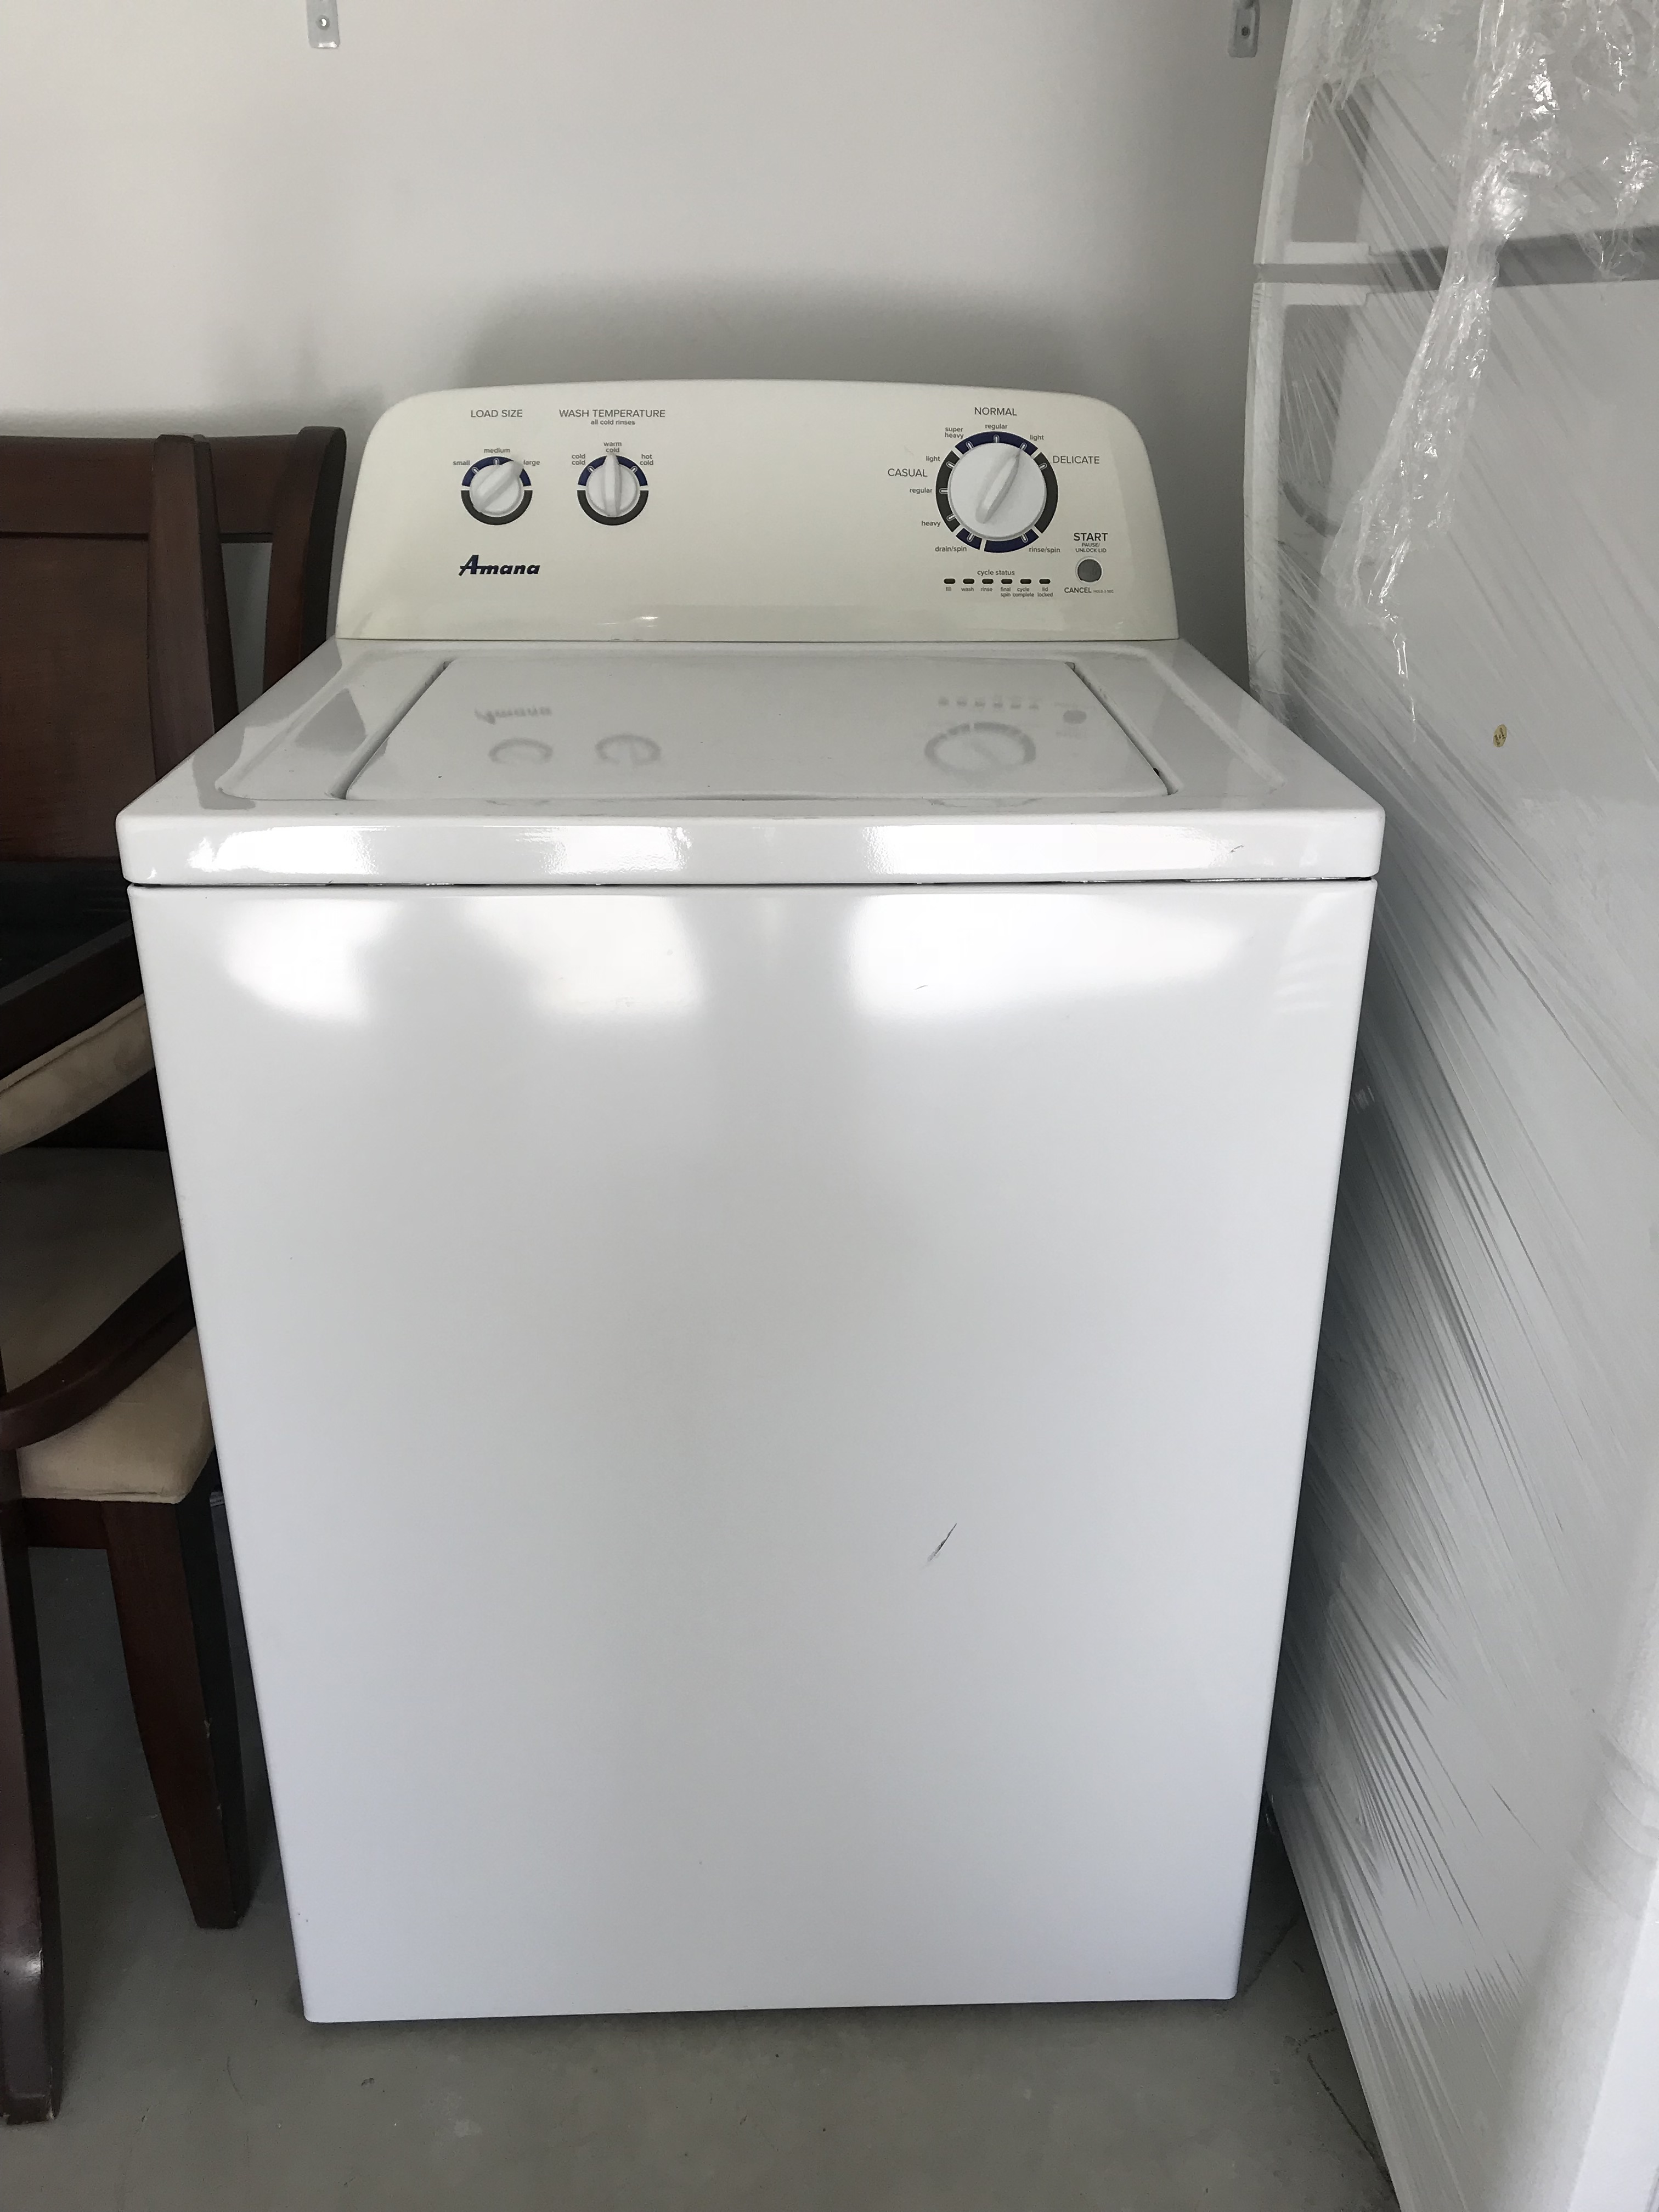 Amana Washer $100 or best offer